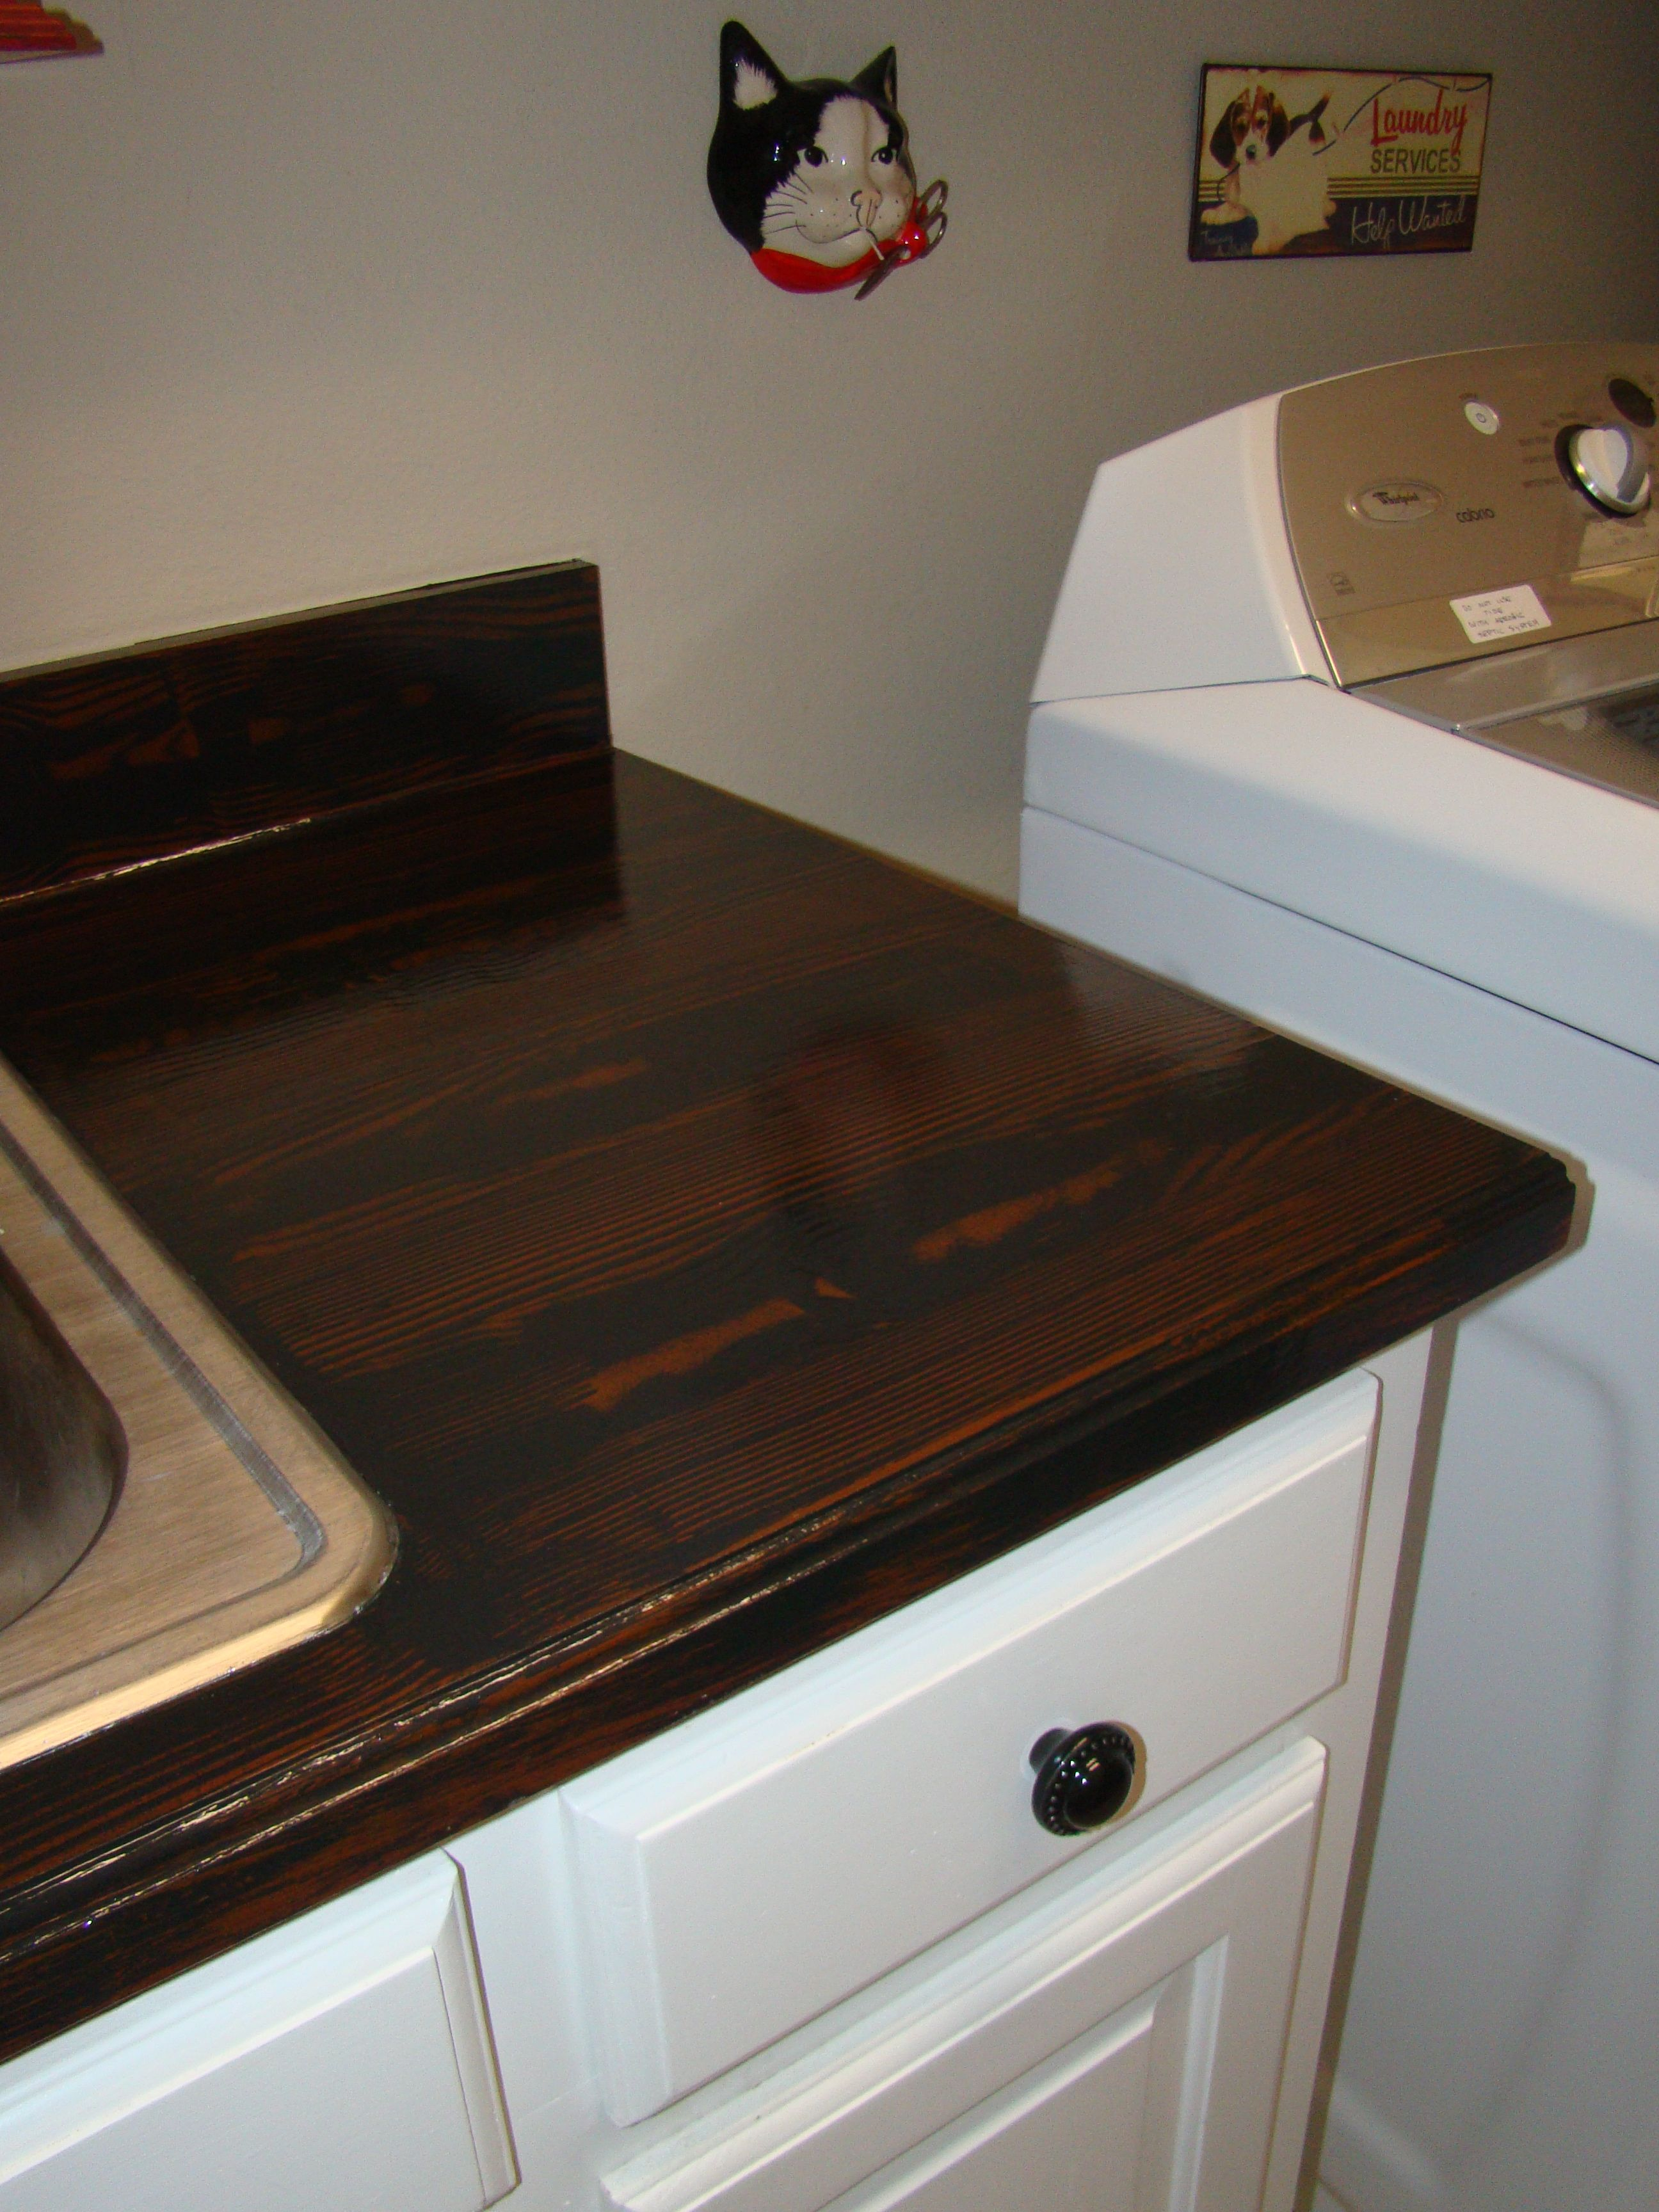 Fake Wood Countertops Painting Laminate To Look Like Wood Use Primer Find A